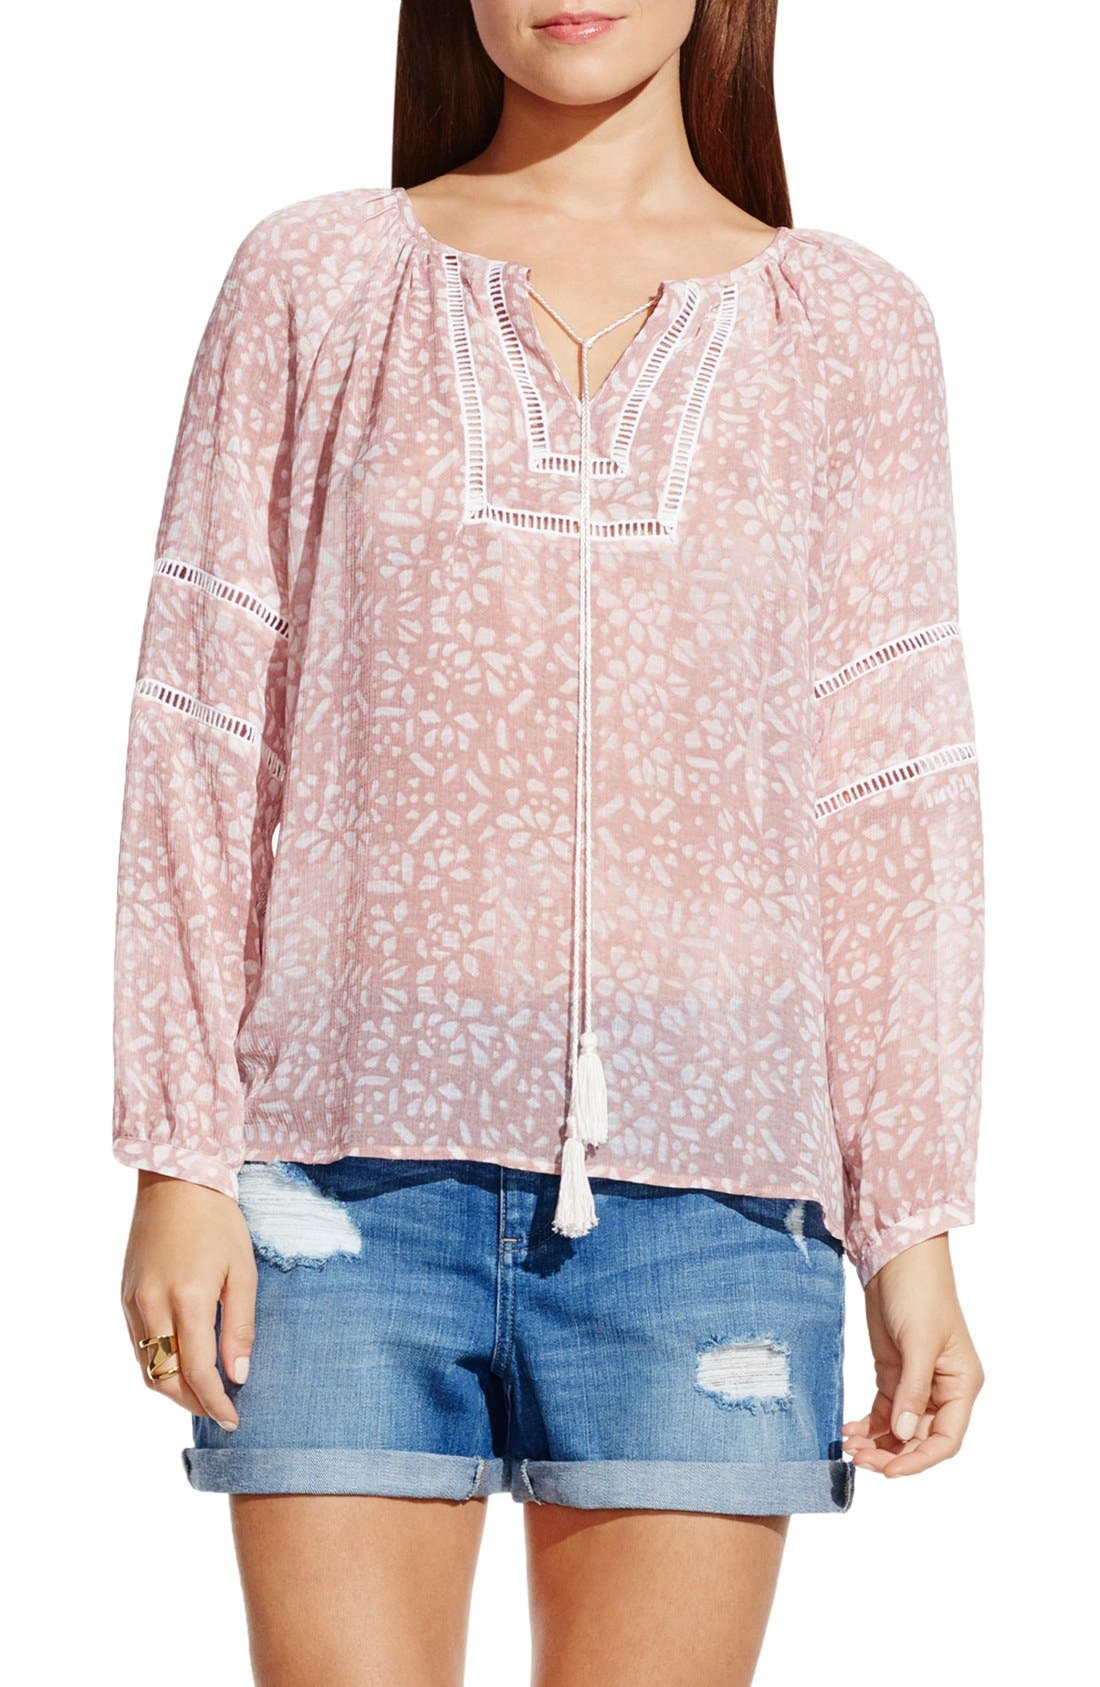 Main Image - Two by Vince Camuto 'Woodblock Petals' Peasant Blouse